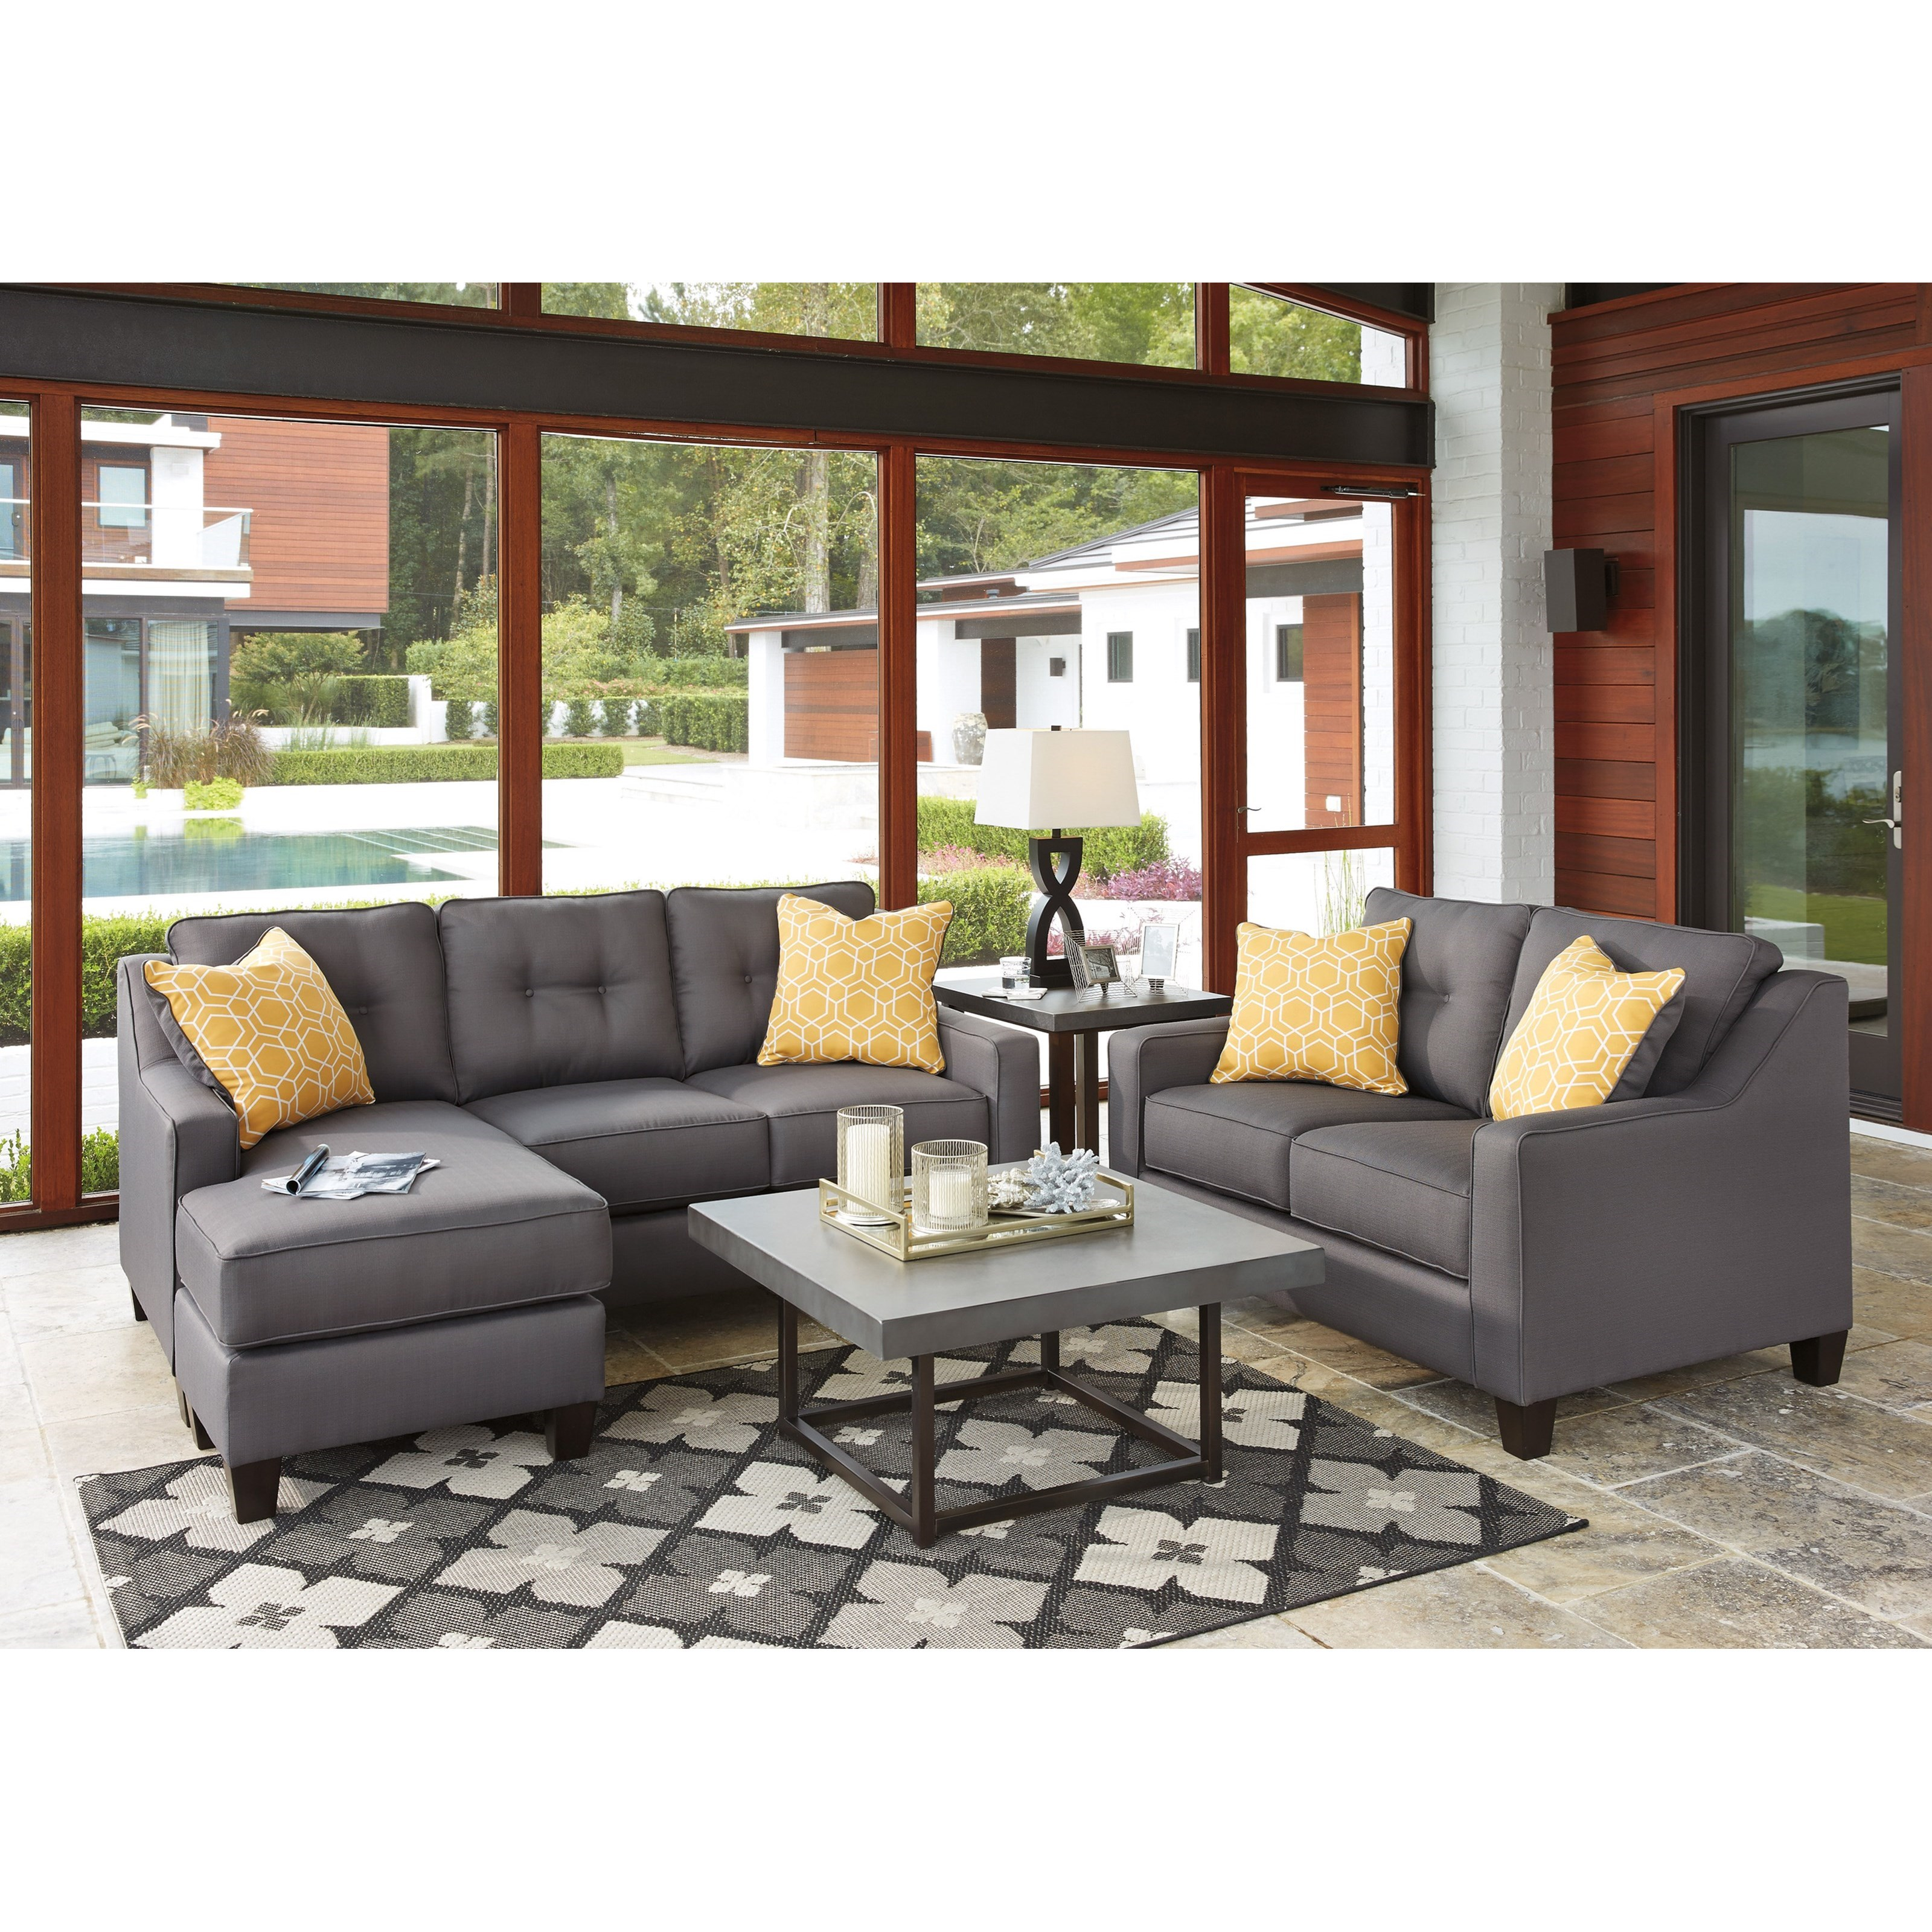 Benchcraft Aldie Nuvella 6870218 Contemporary Sofa Chaise In Performance Fabric Dunk Bright